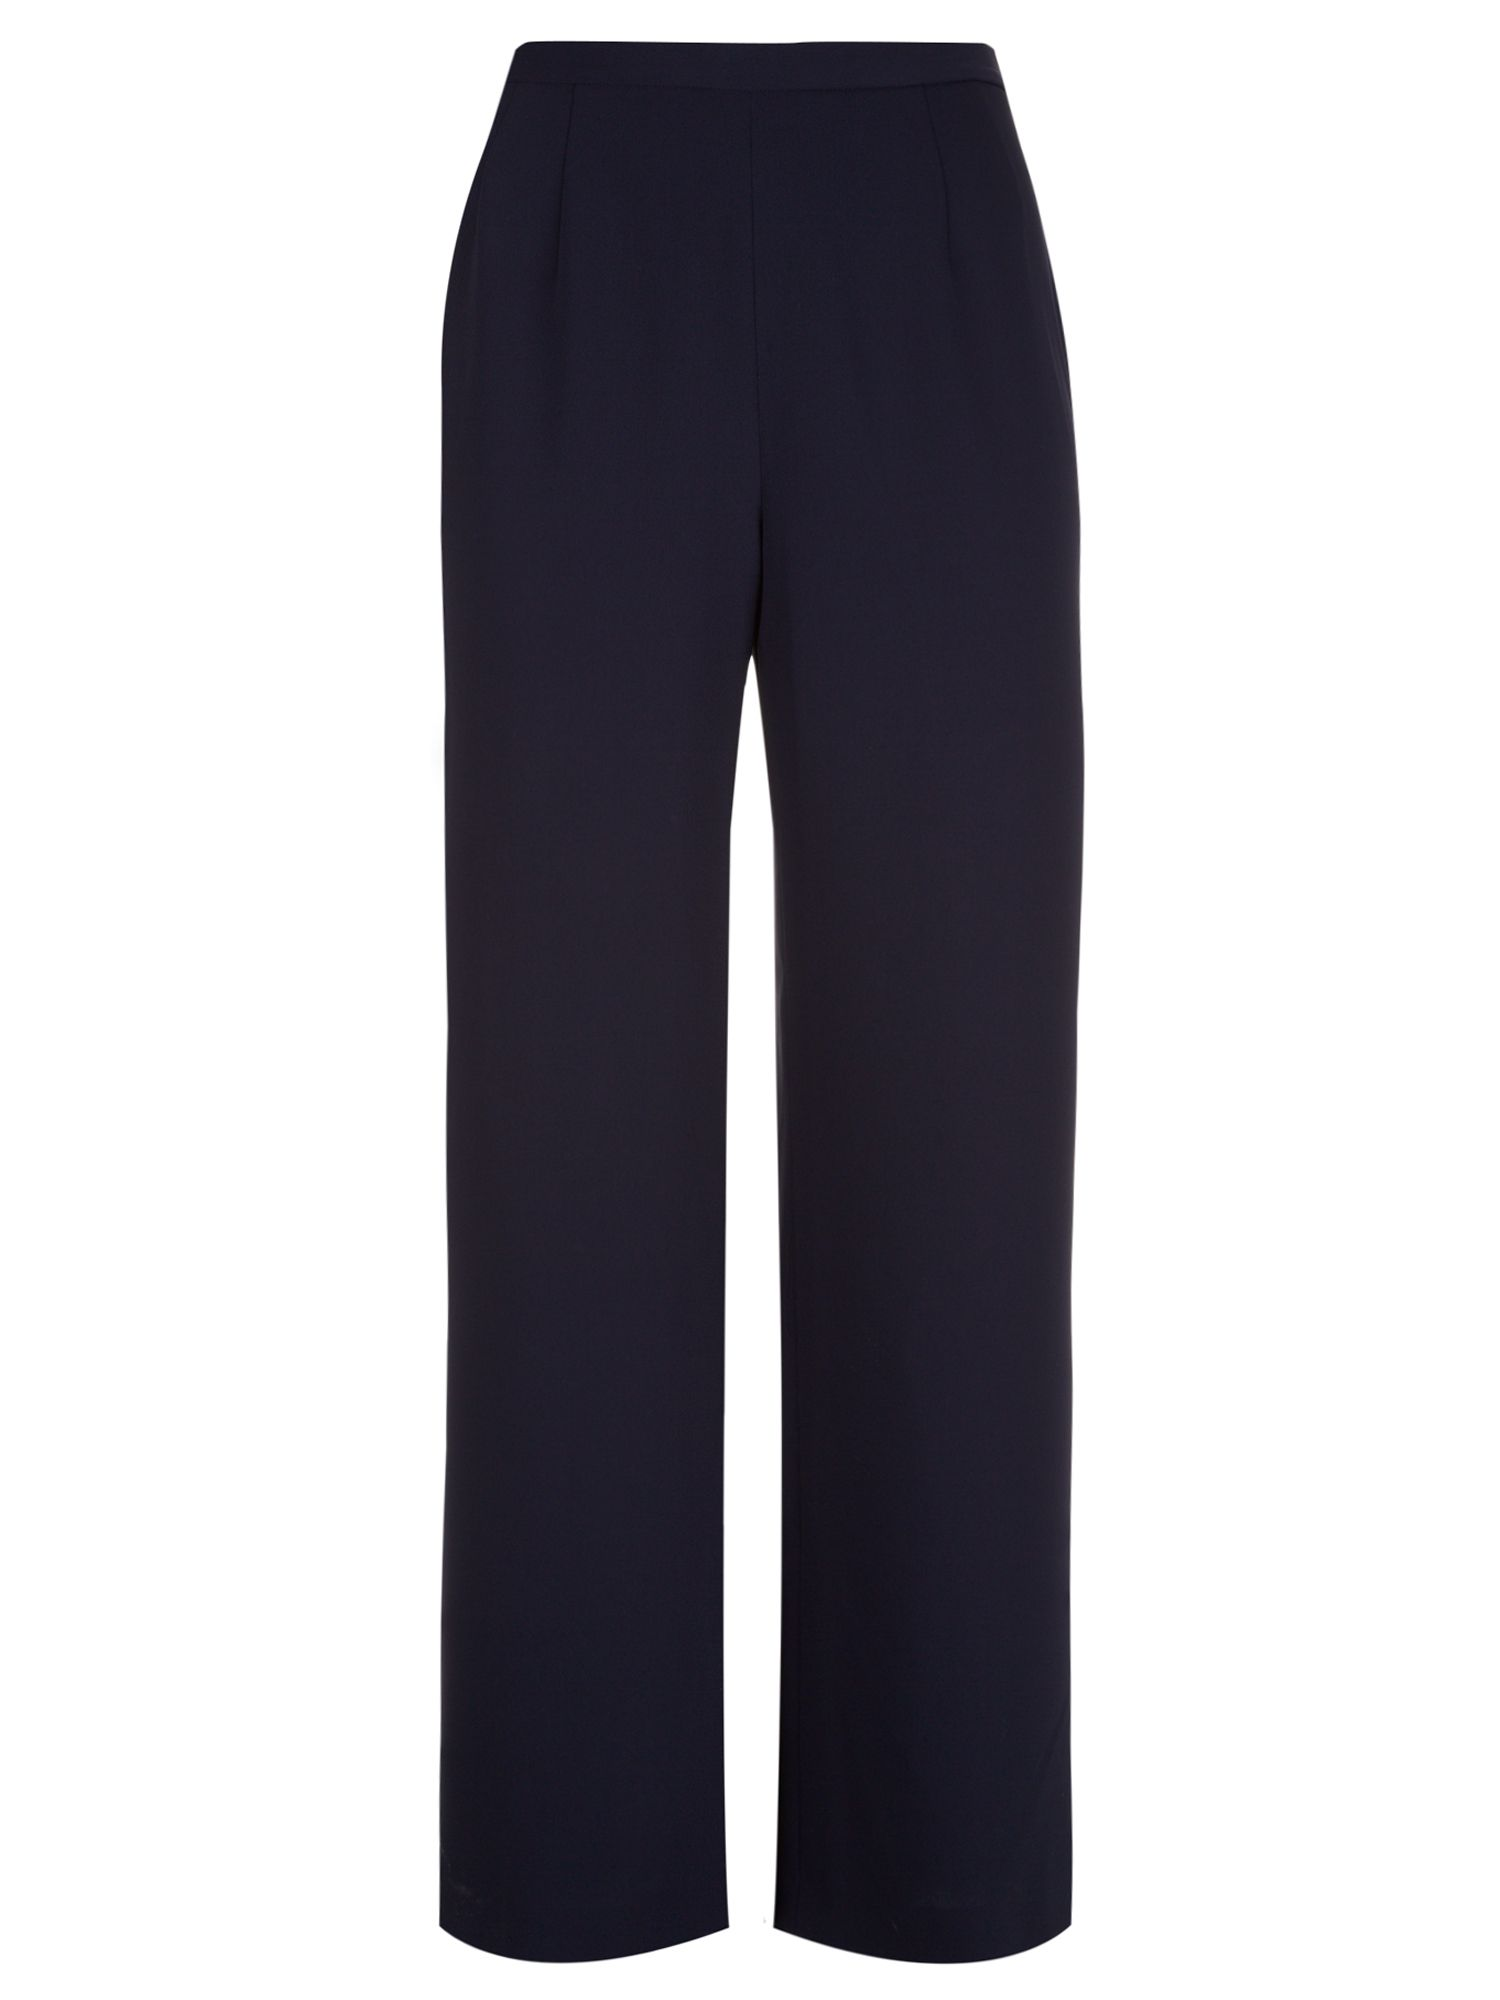 Crepe tailored trouser